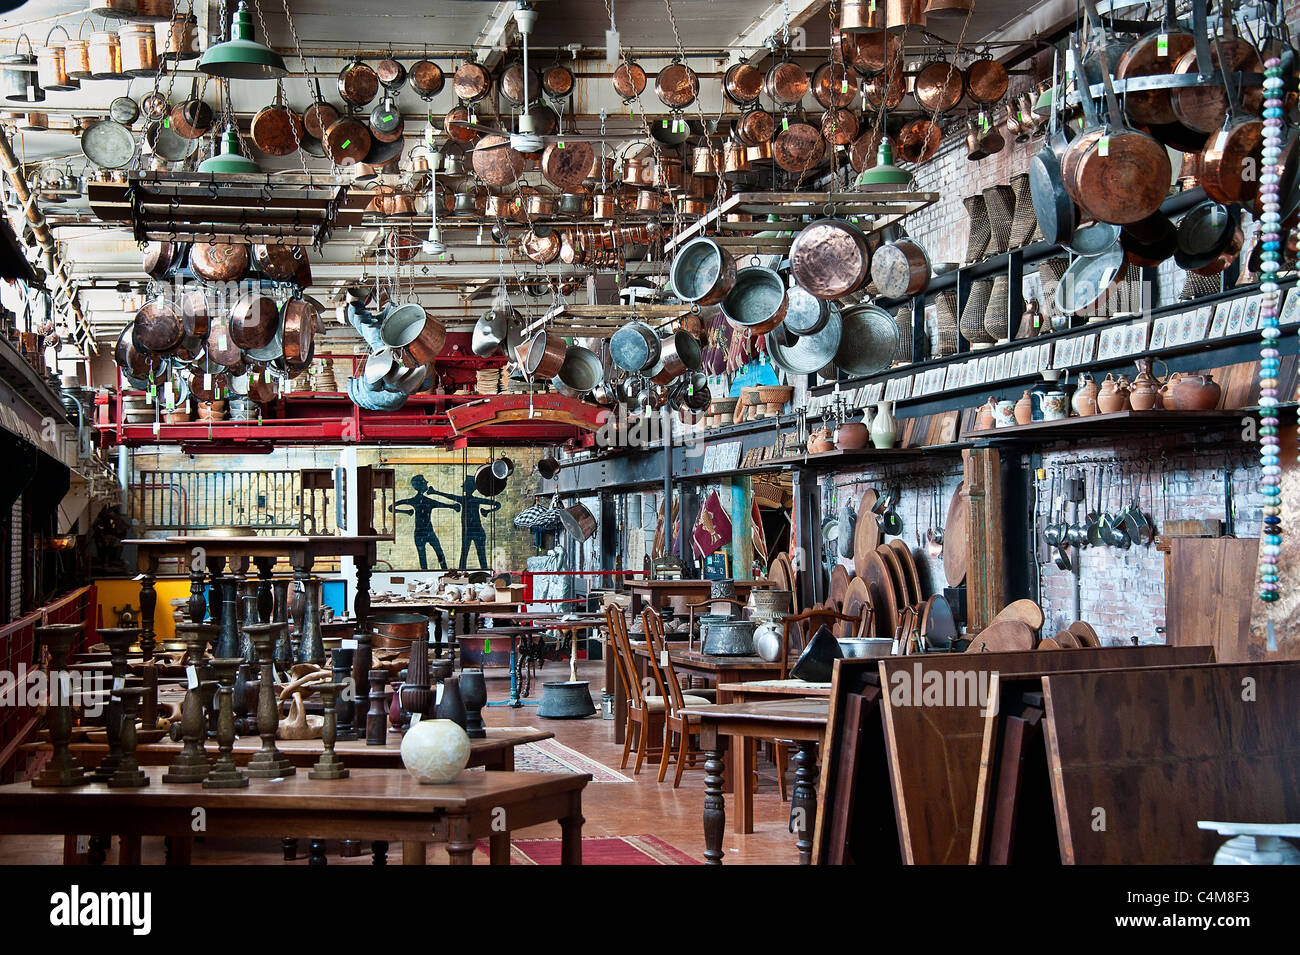 Imported asian and middle eastern antique showroom. - Stock Image